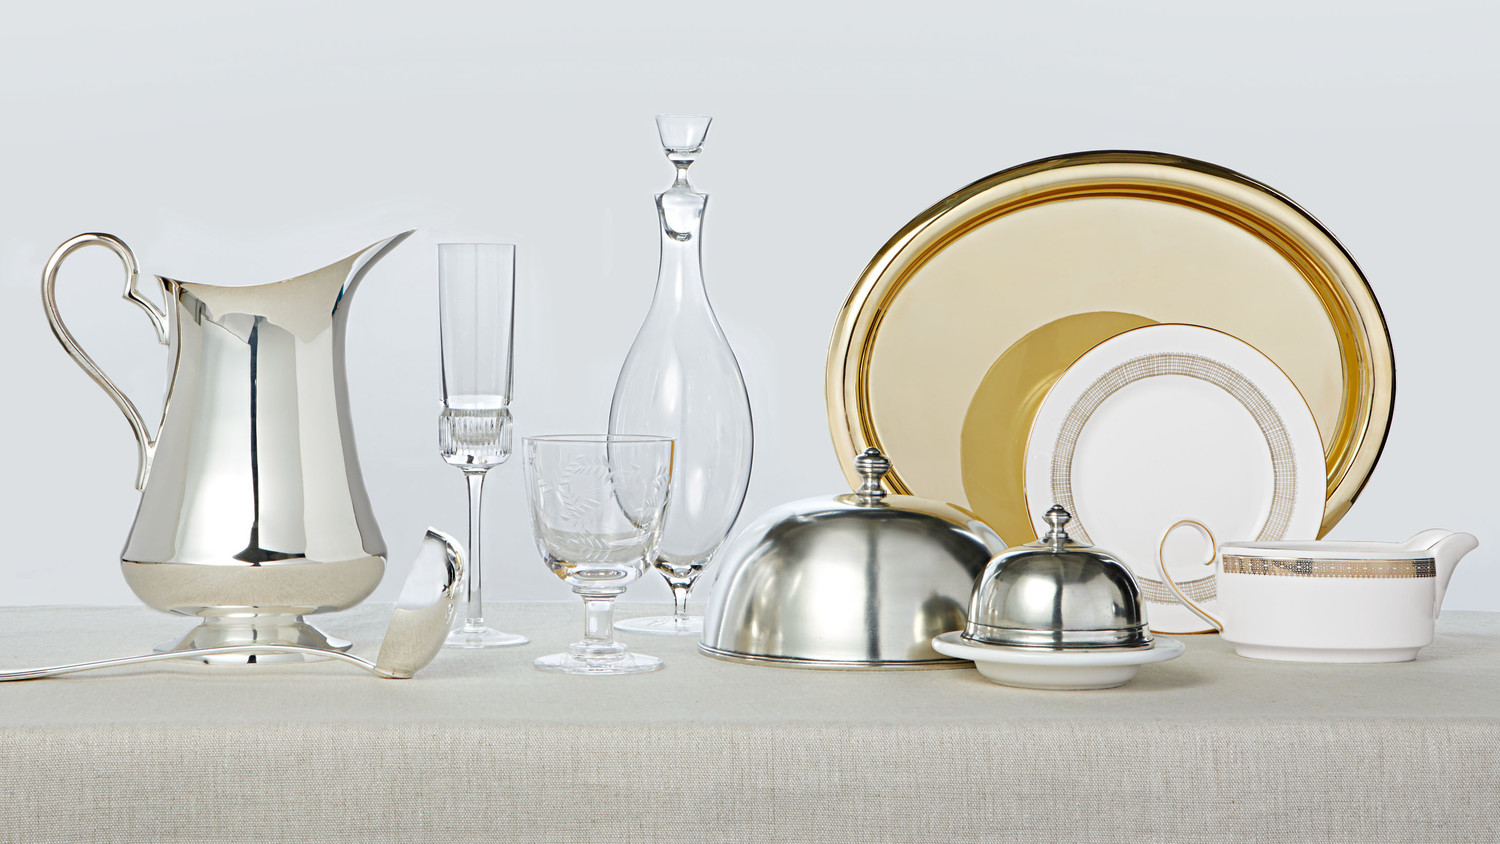 How To Clean Your Plates, Silver, Glasses, And More